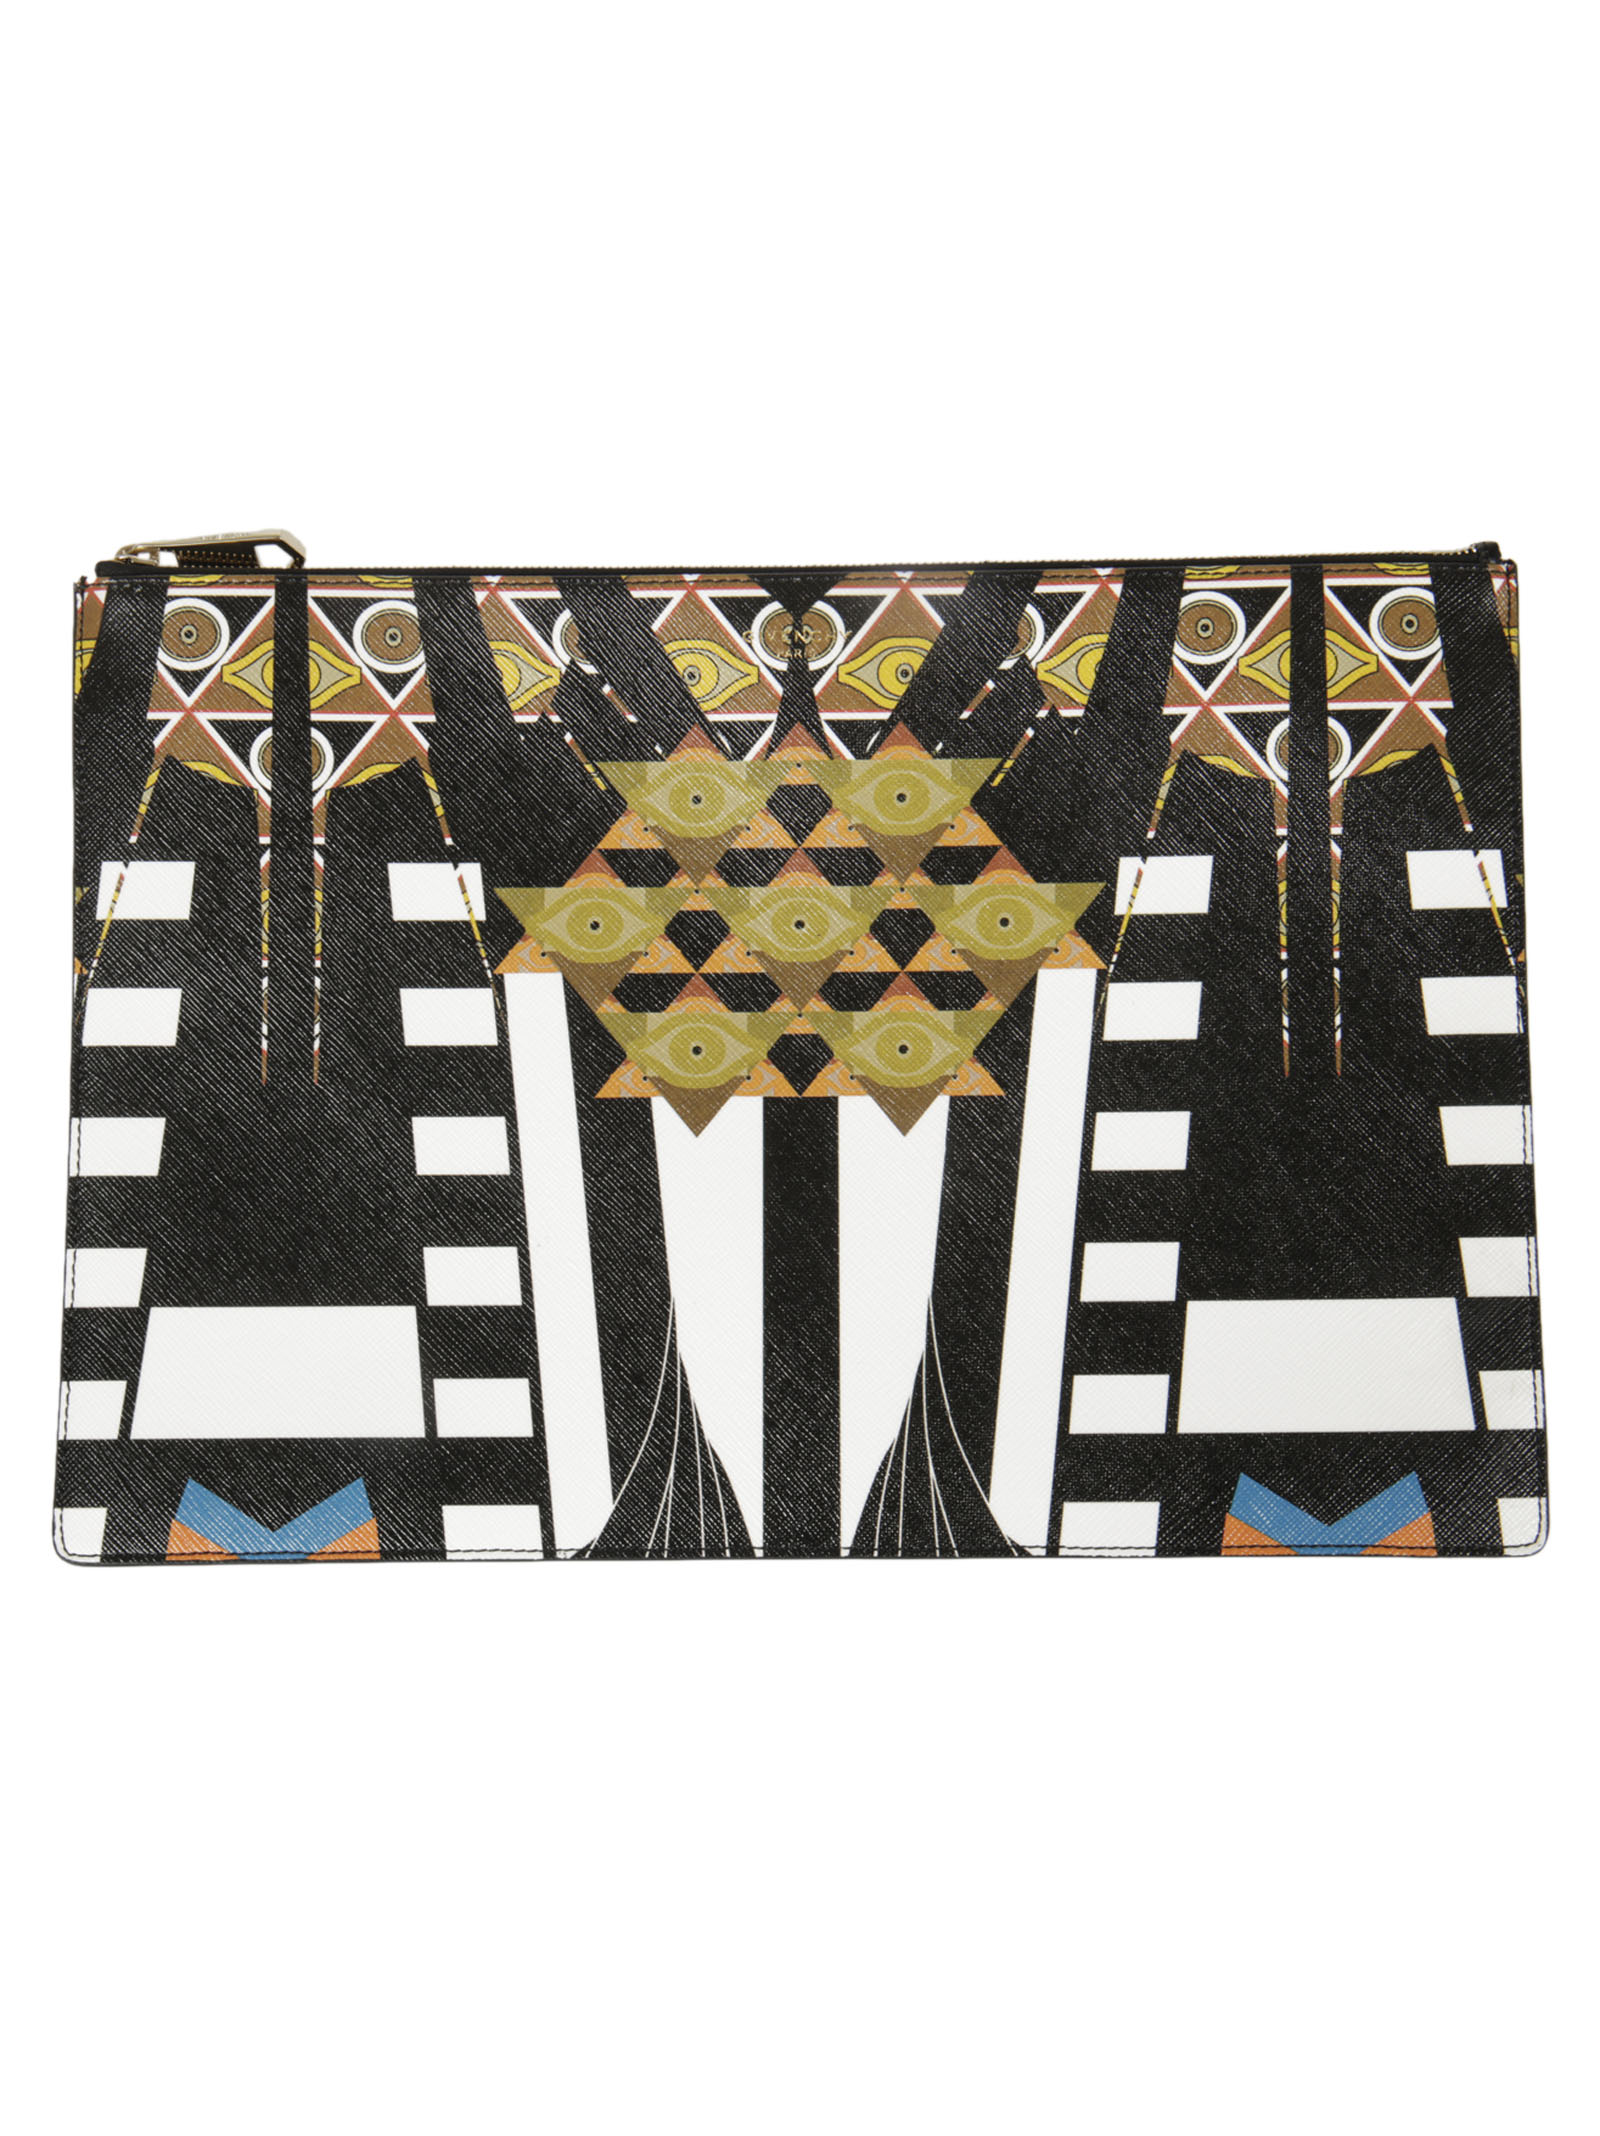 Givenchy Givenchy Printed Clutch